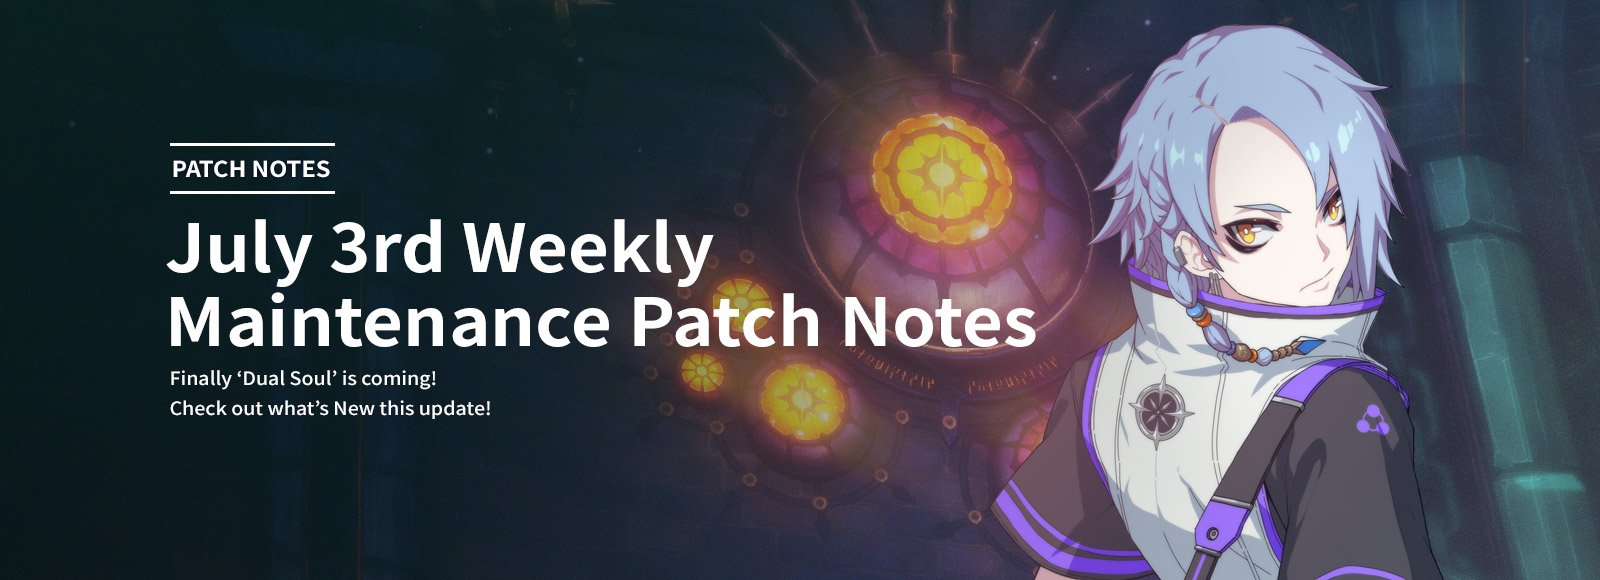 July 3rd Weekly Maintenance Patch Notes